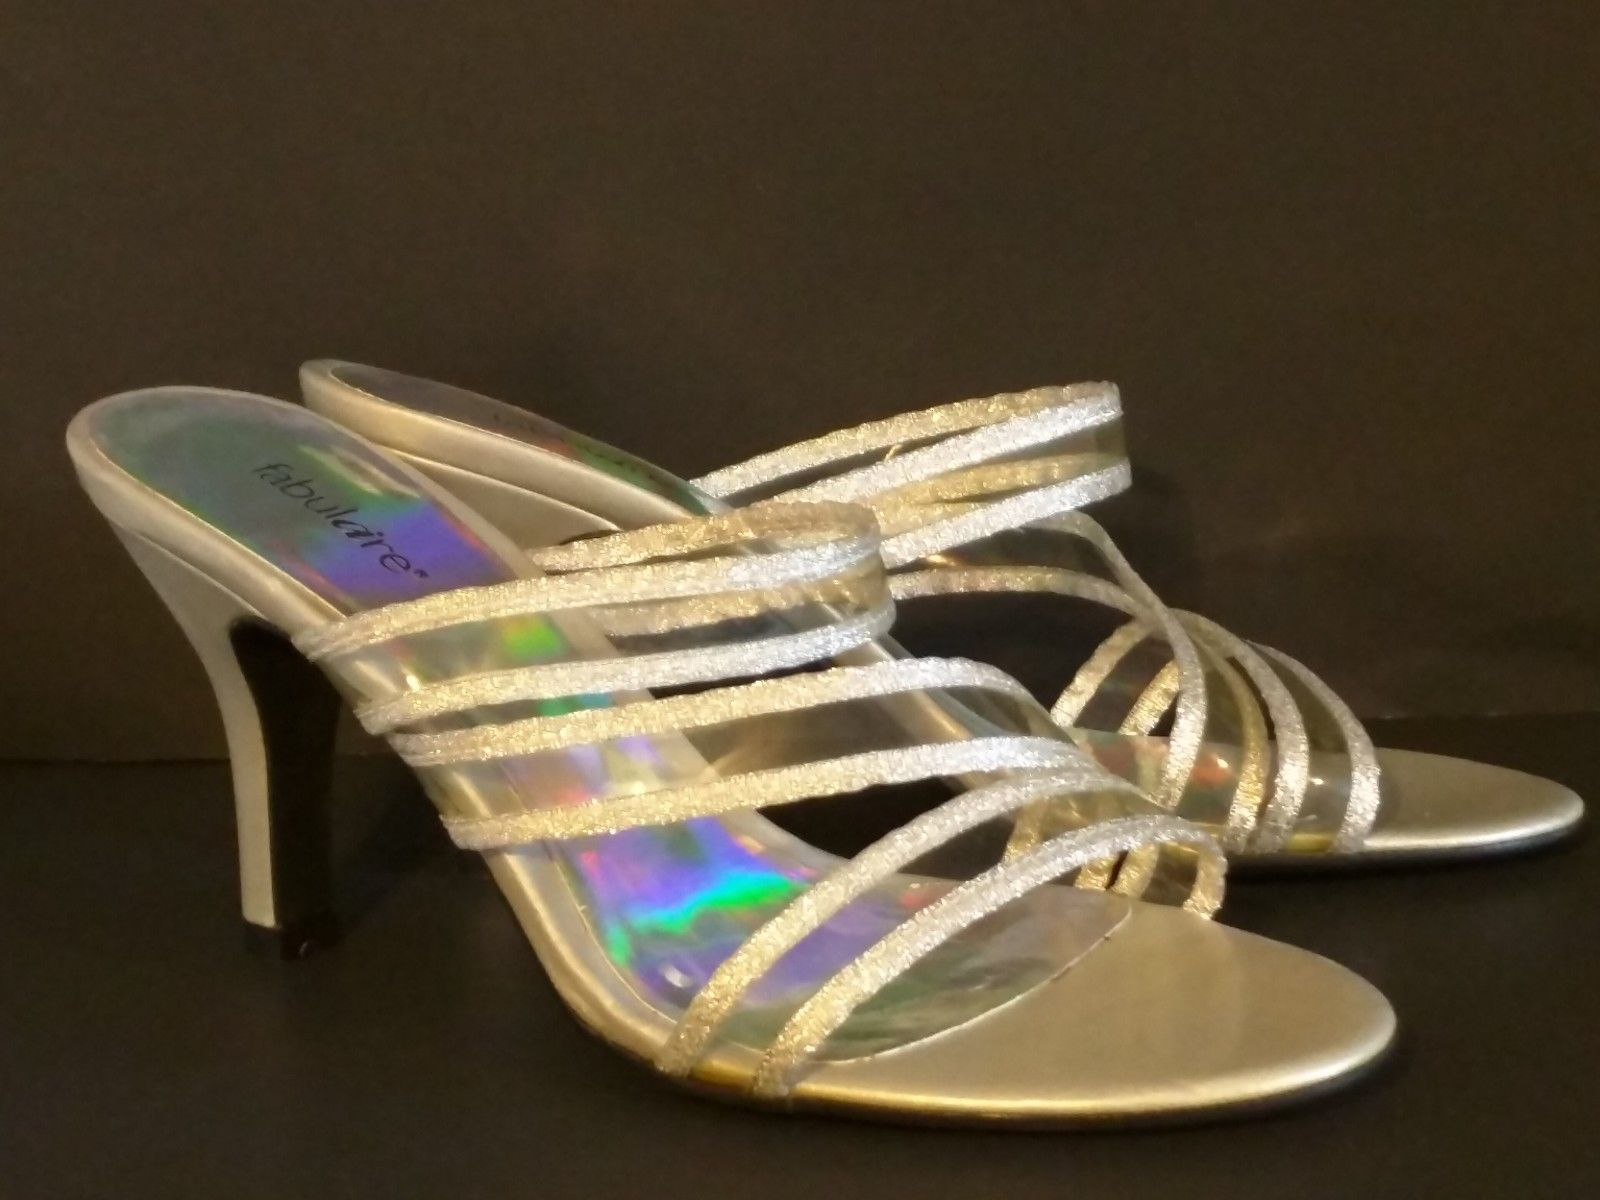 FABULAIRE – Women's Silver Slide Heels/Sandals - Size: 7 ½ M